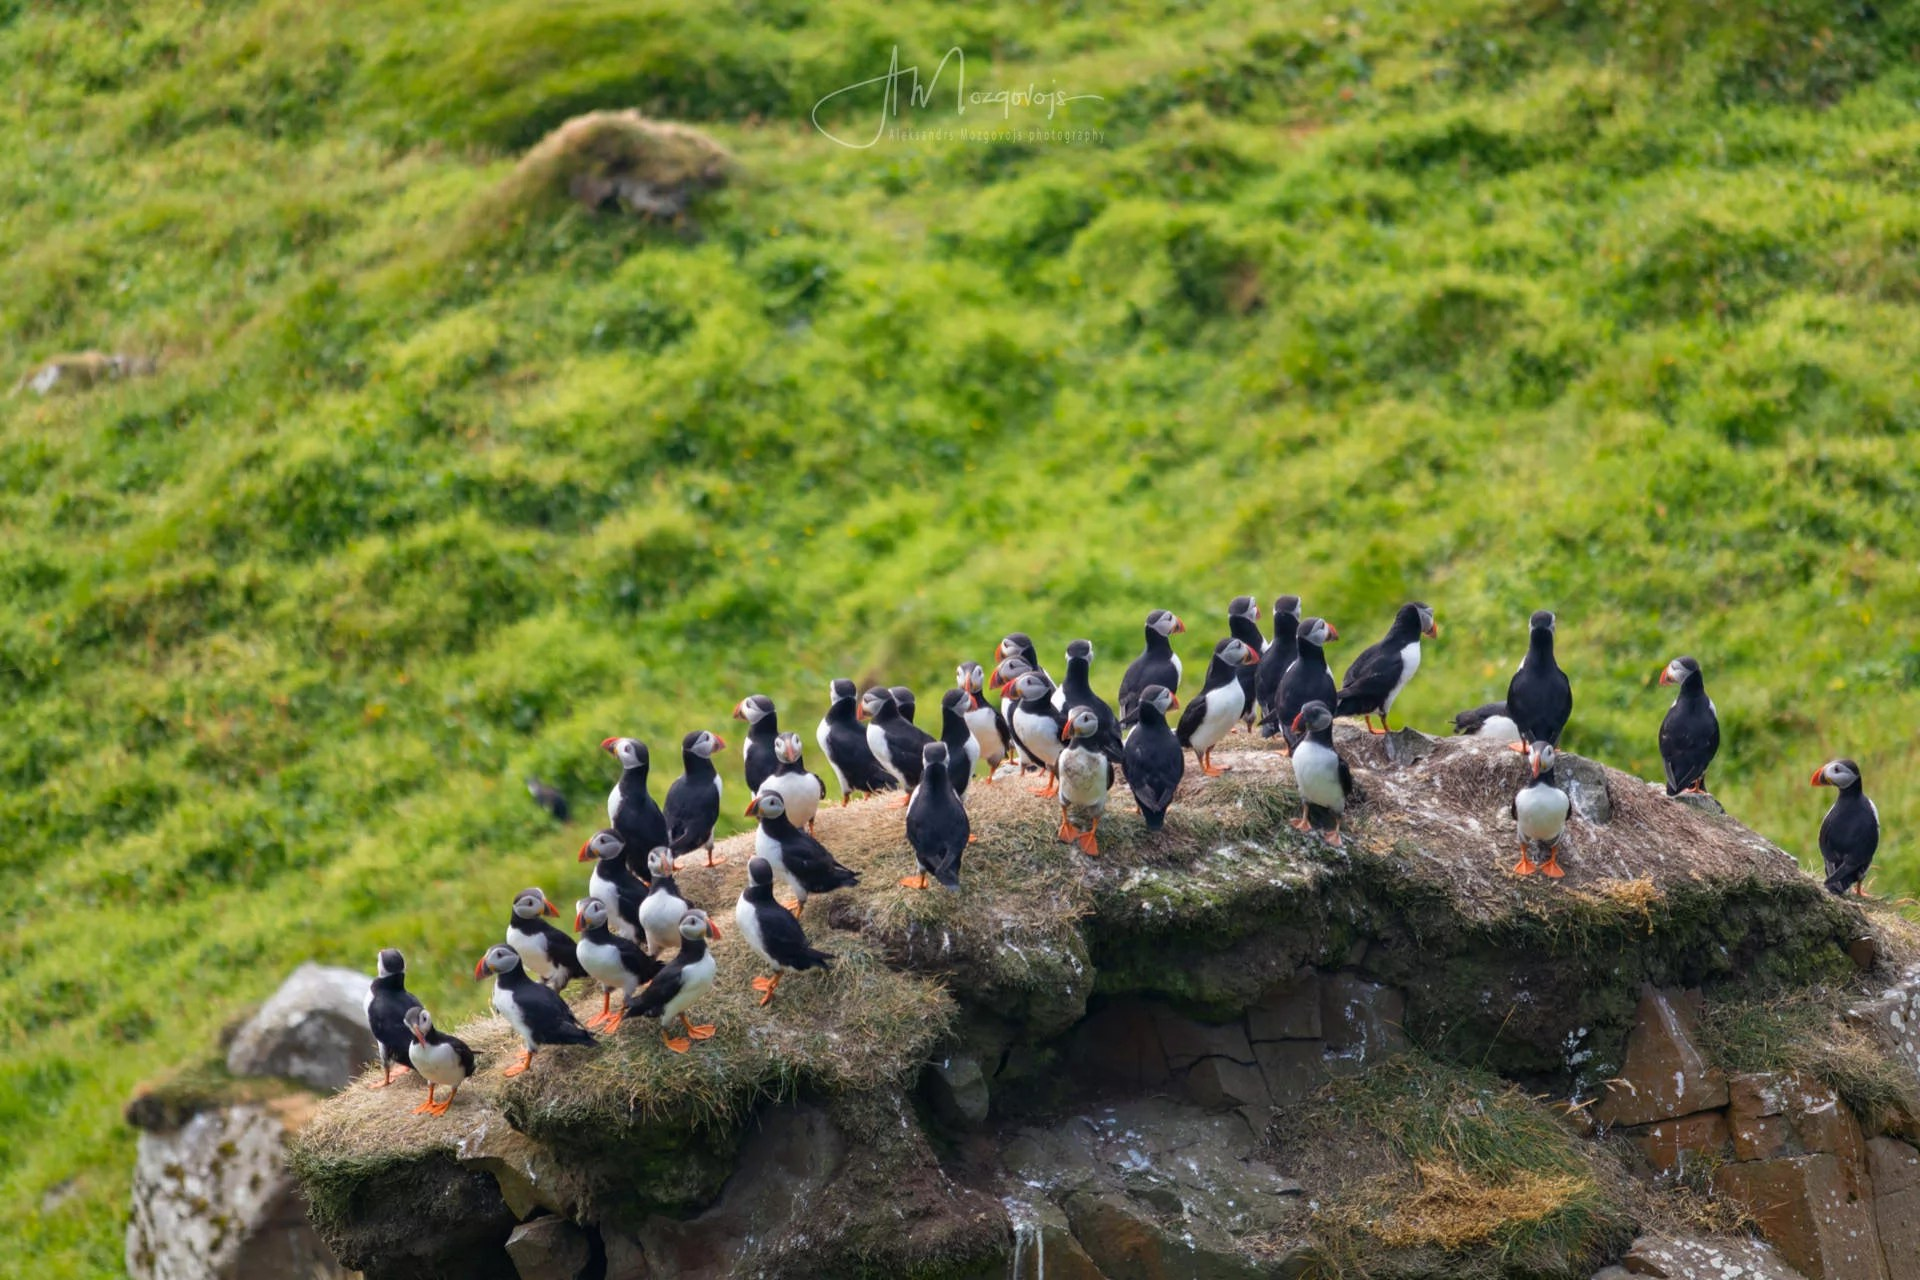 Puffins clustered on the rock